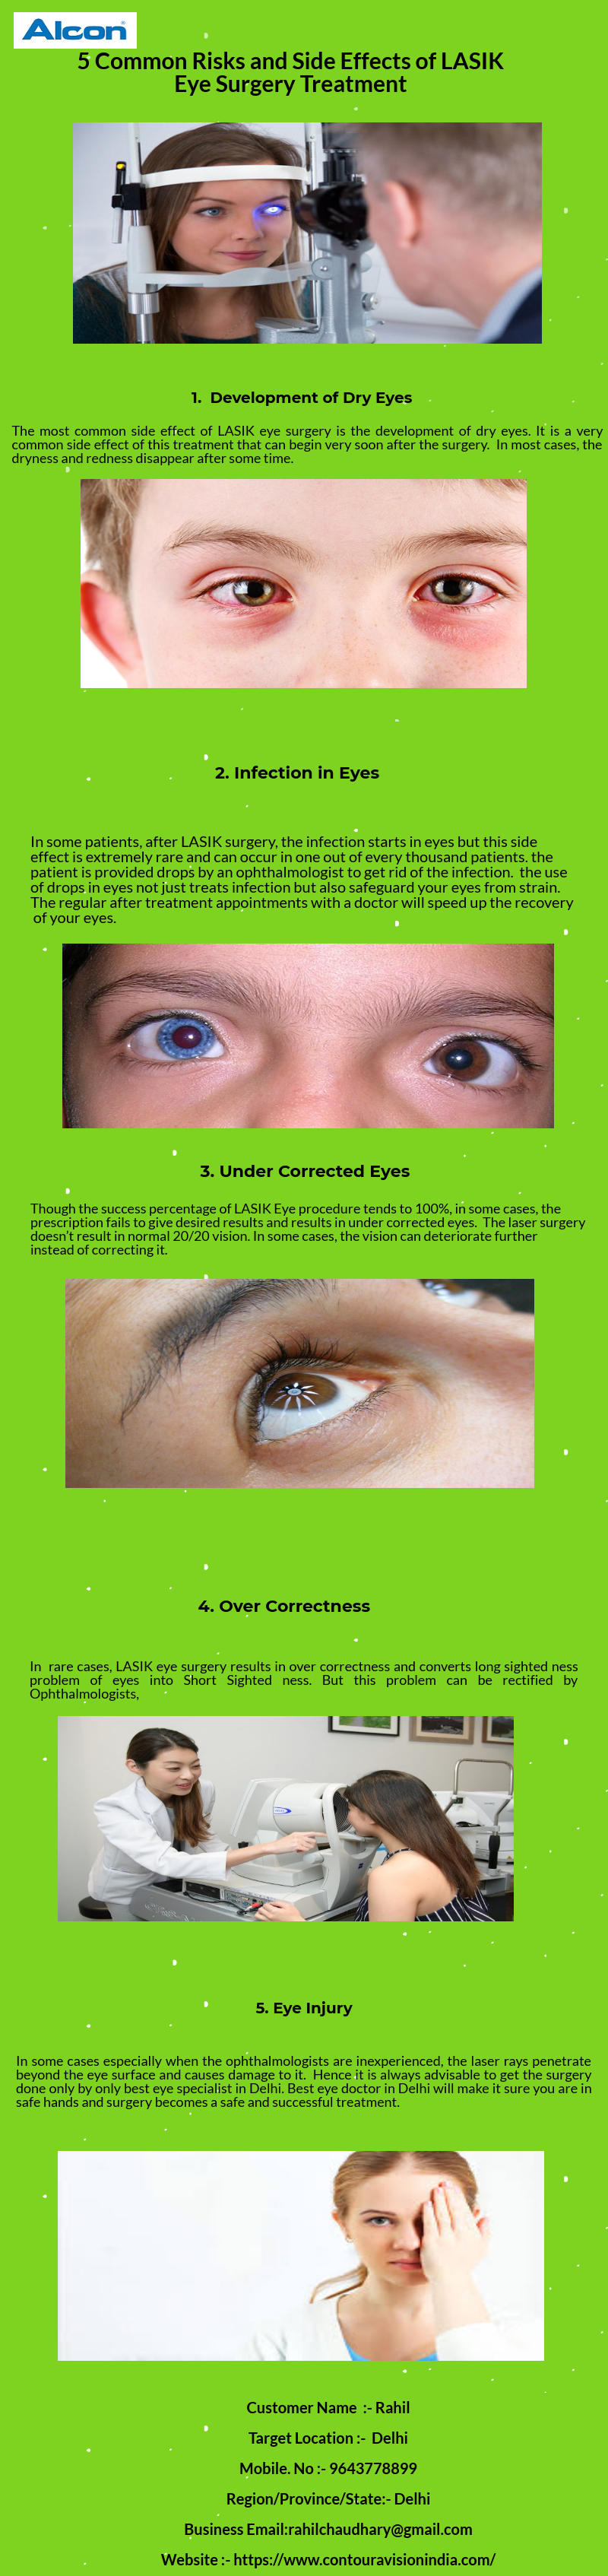 The Laser Assisted In Situ Keratomileusis In Short Lasik Is A Procedure Which Can Reshape The Cornea To Enabl Lasik Laser Eye Surgery Cost Lasik Eye Surgery